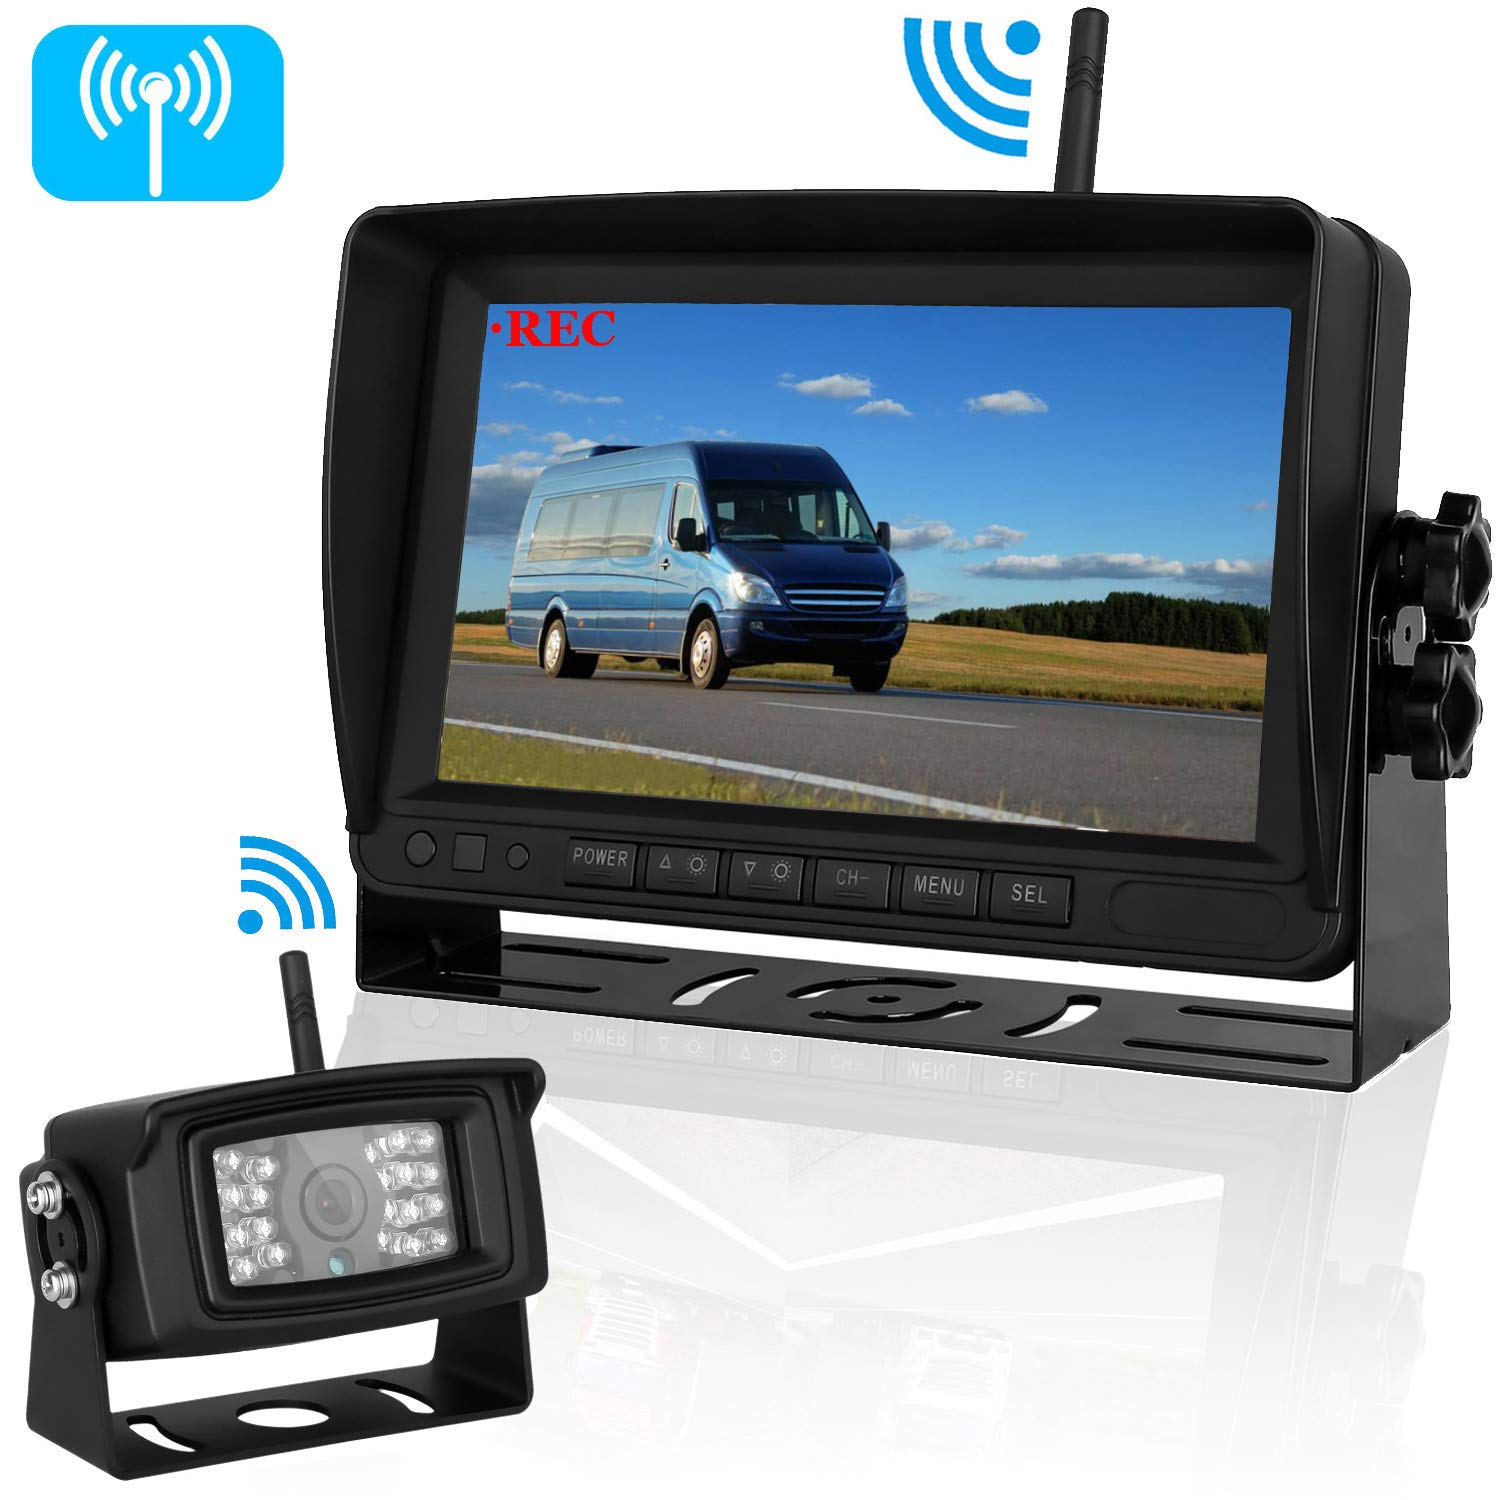 Upgraded Digital Wireless Backup Camera 7'' Monitor Rear View System Split Screen Recorder for RV/SUV/Pickup/Truck/Trailer/Vehicle Rear/Side/Front View Driving&Reversing